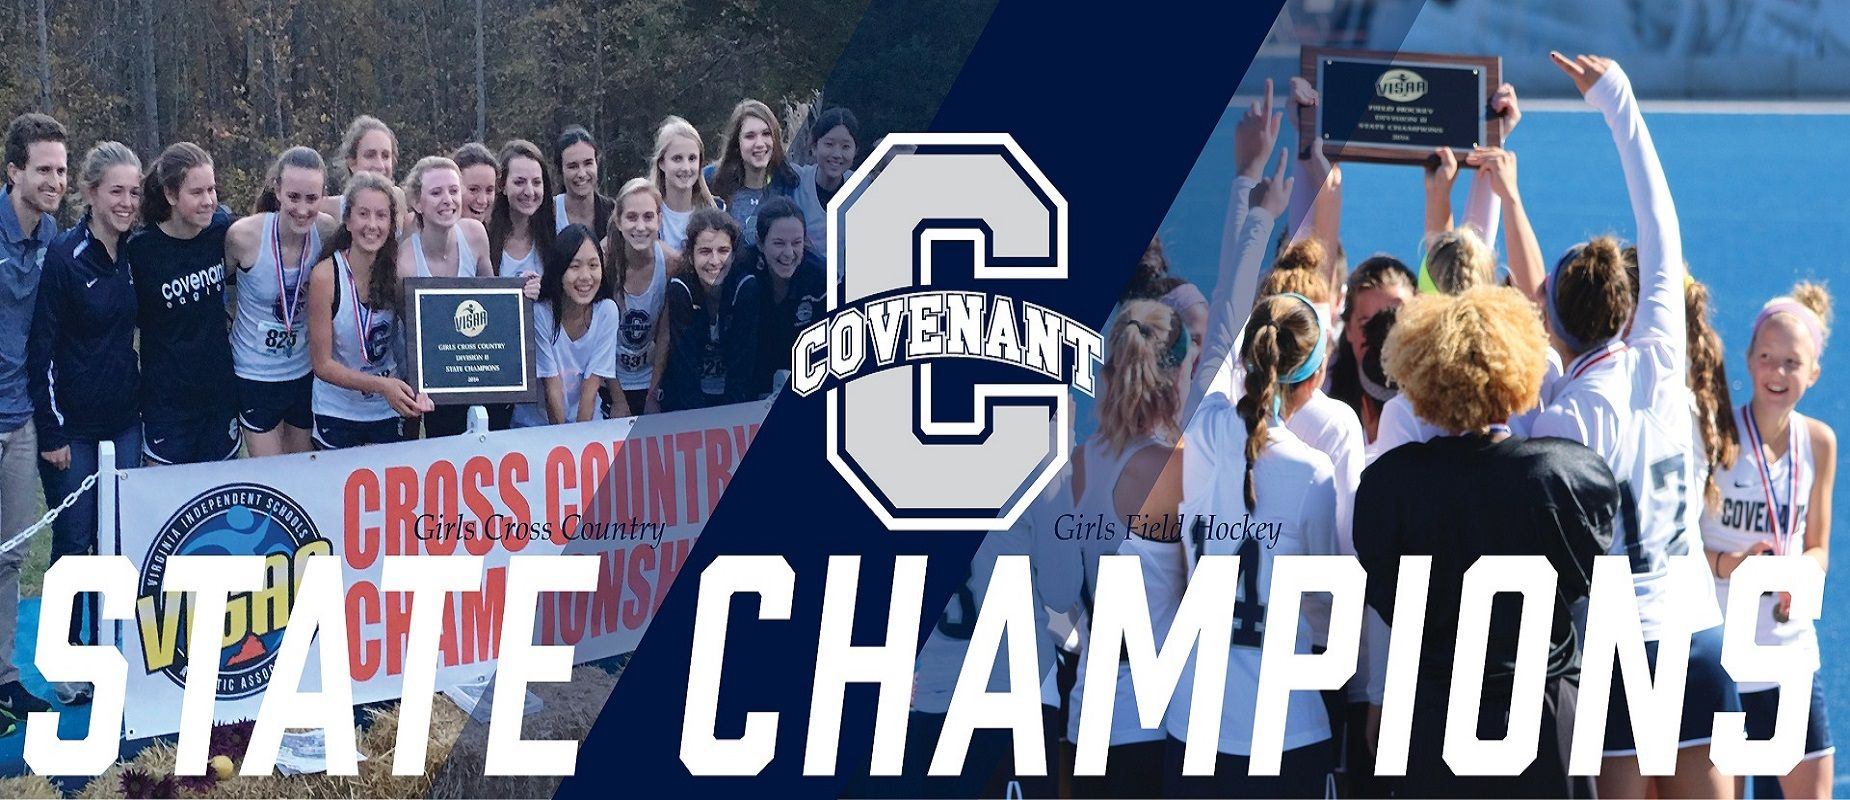 In 2016, Girls Field Hockey won their first state championship in school history, and our Girls Cross Country team repeated as state champions.